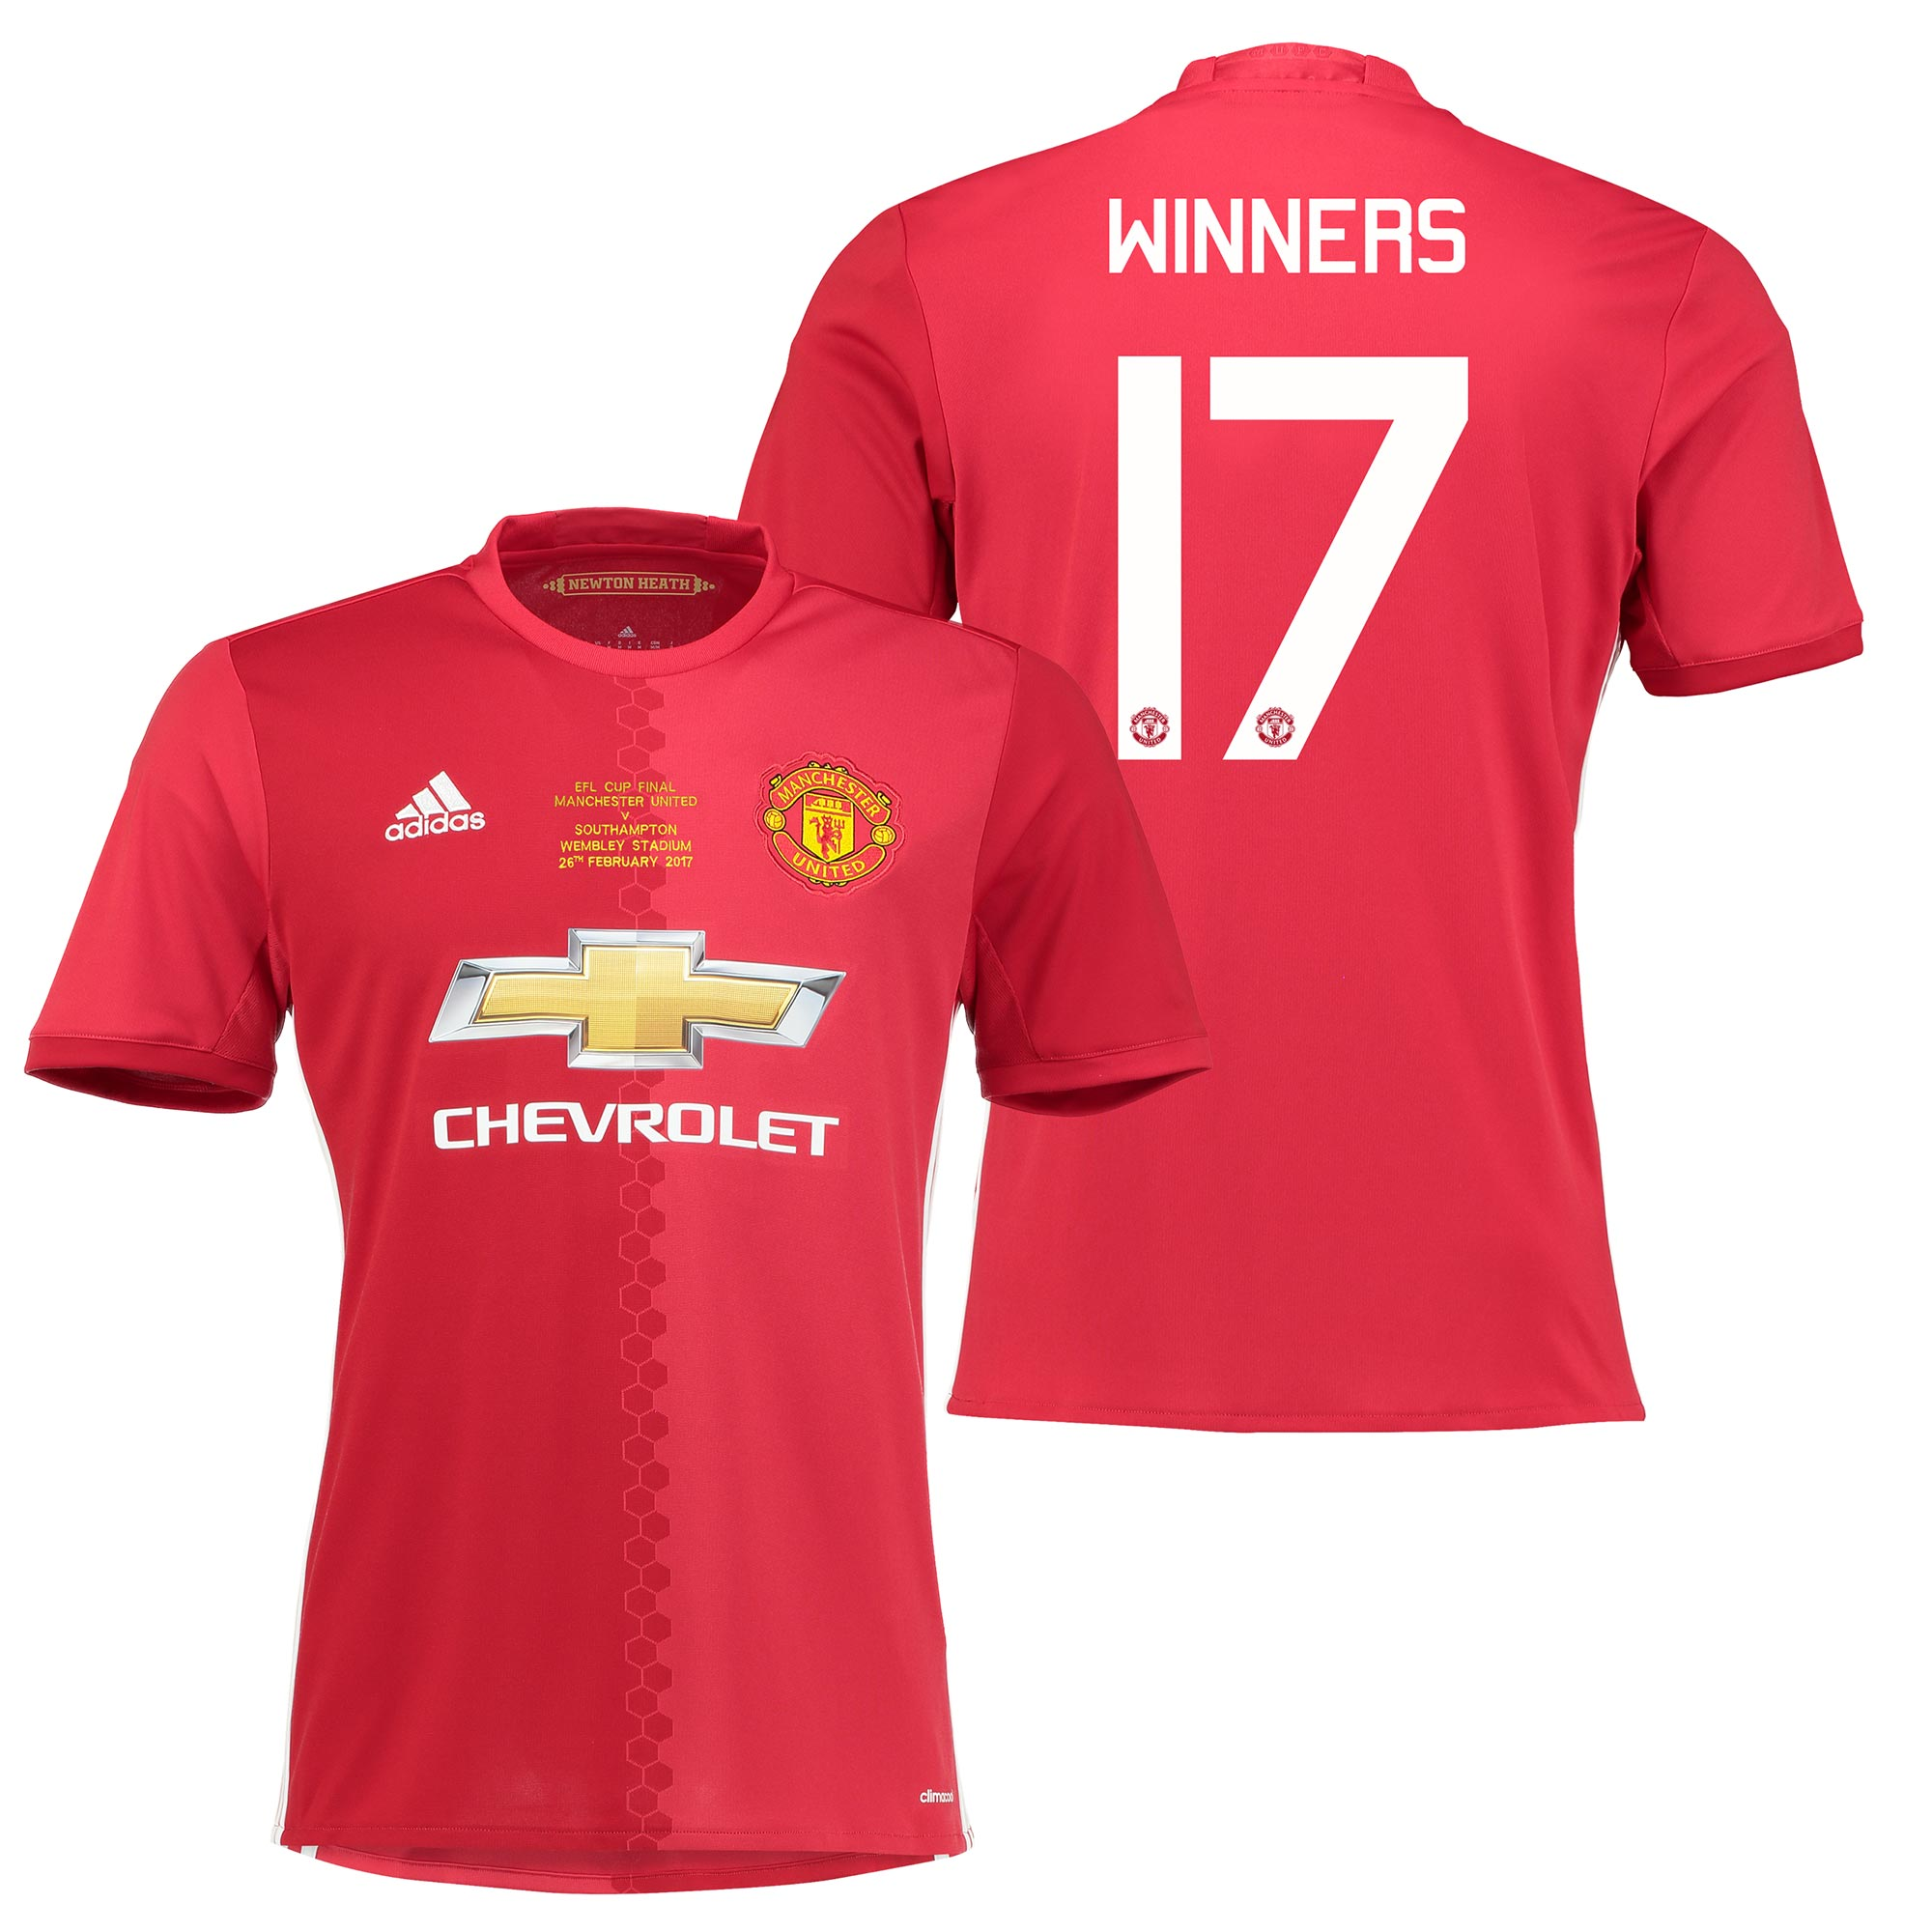 Manchester United EFL Cup Final Home Shirt 2016-17 with Winners 17 pri